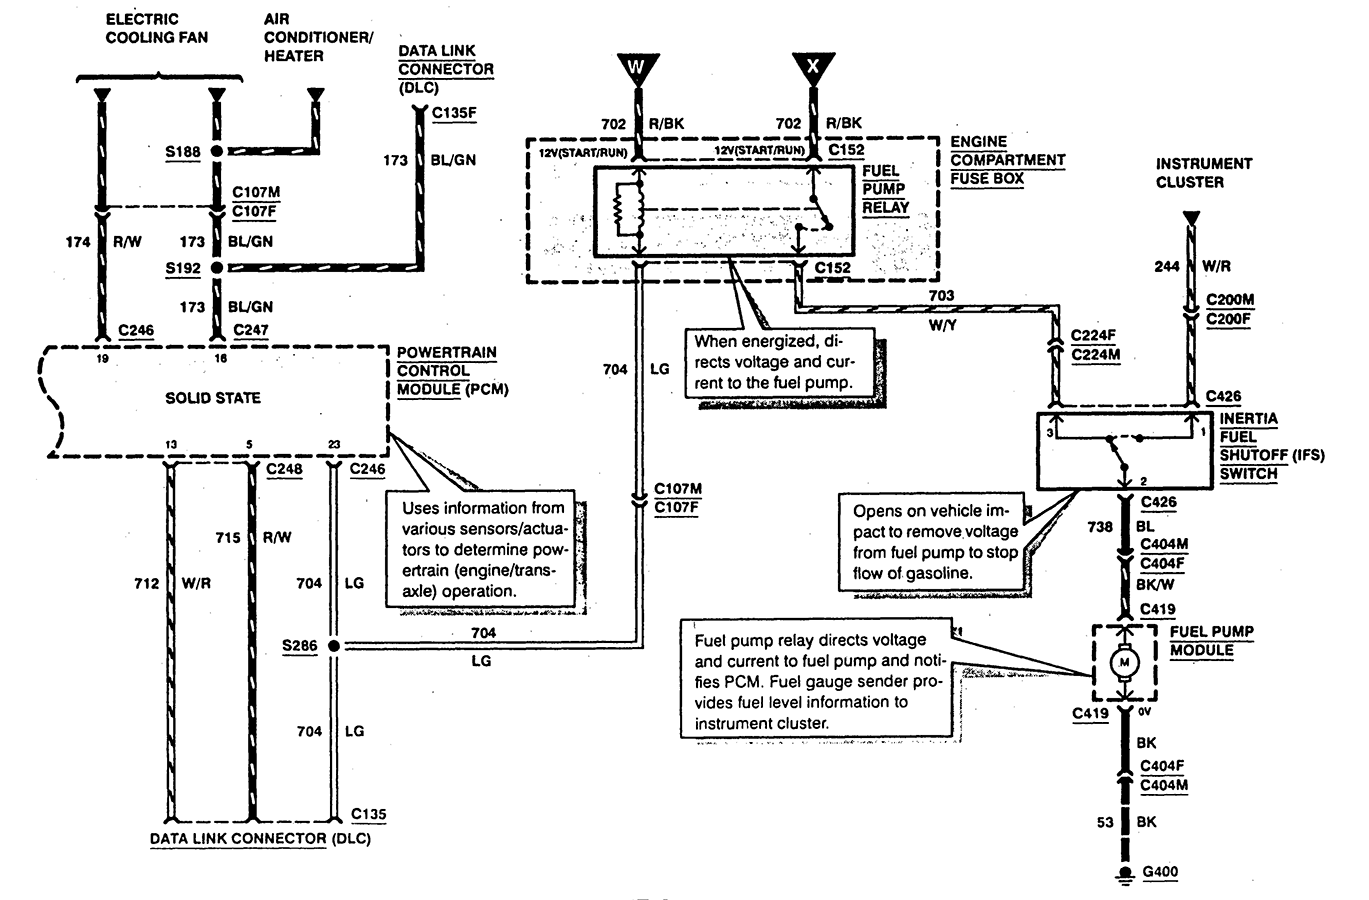 ford probe fuel pump diagram - wiring diagram wood-inspection-a -  wood-inspection-a.consorziofiuggiturismo.it  consorziofiuggiturismo.it